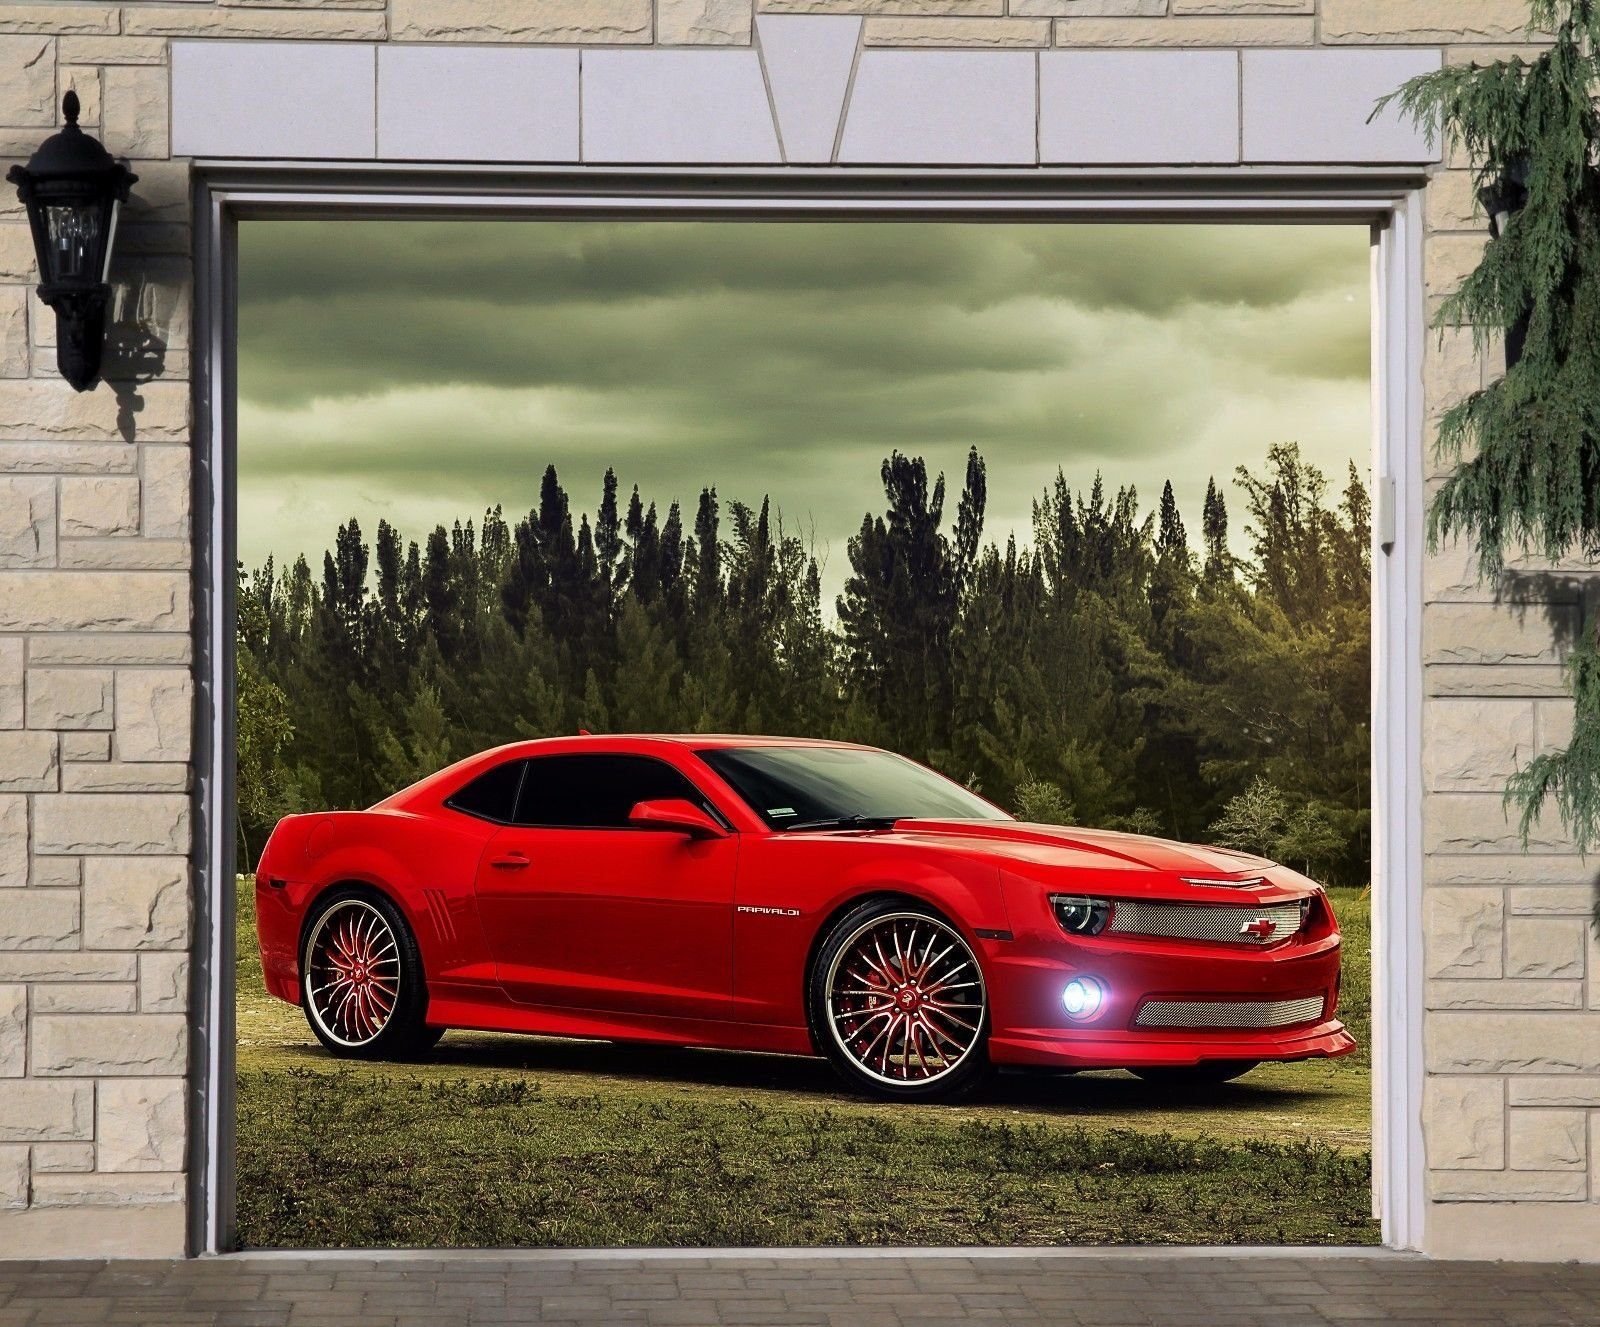 Single Garage Door Cover Mustang Car Mural 3D Effect Banner Billboard Full Color Banner 3D Effect Print Mural Size 83 x 89 Dav145_1